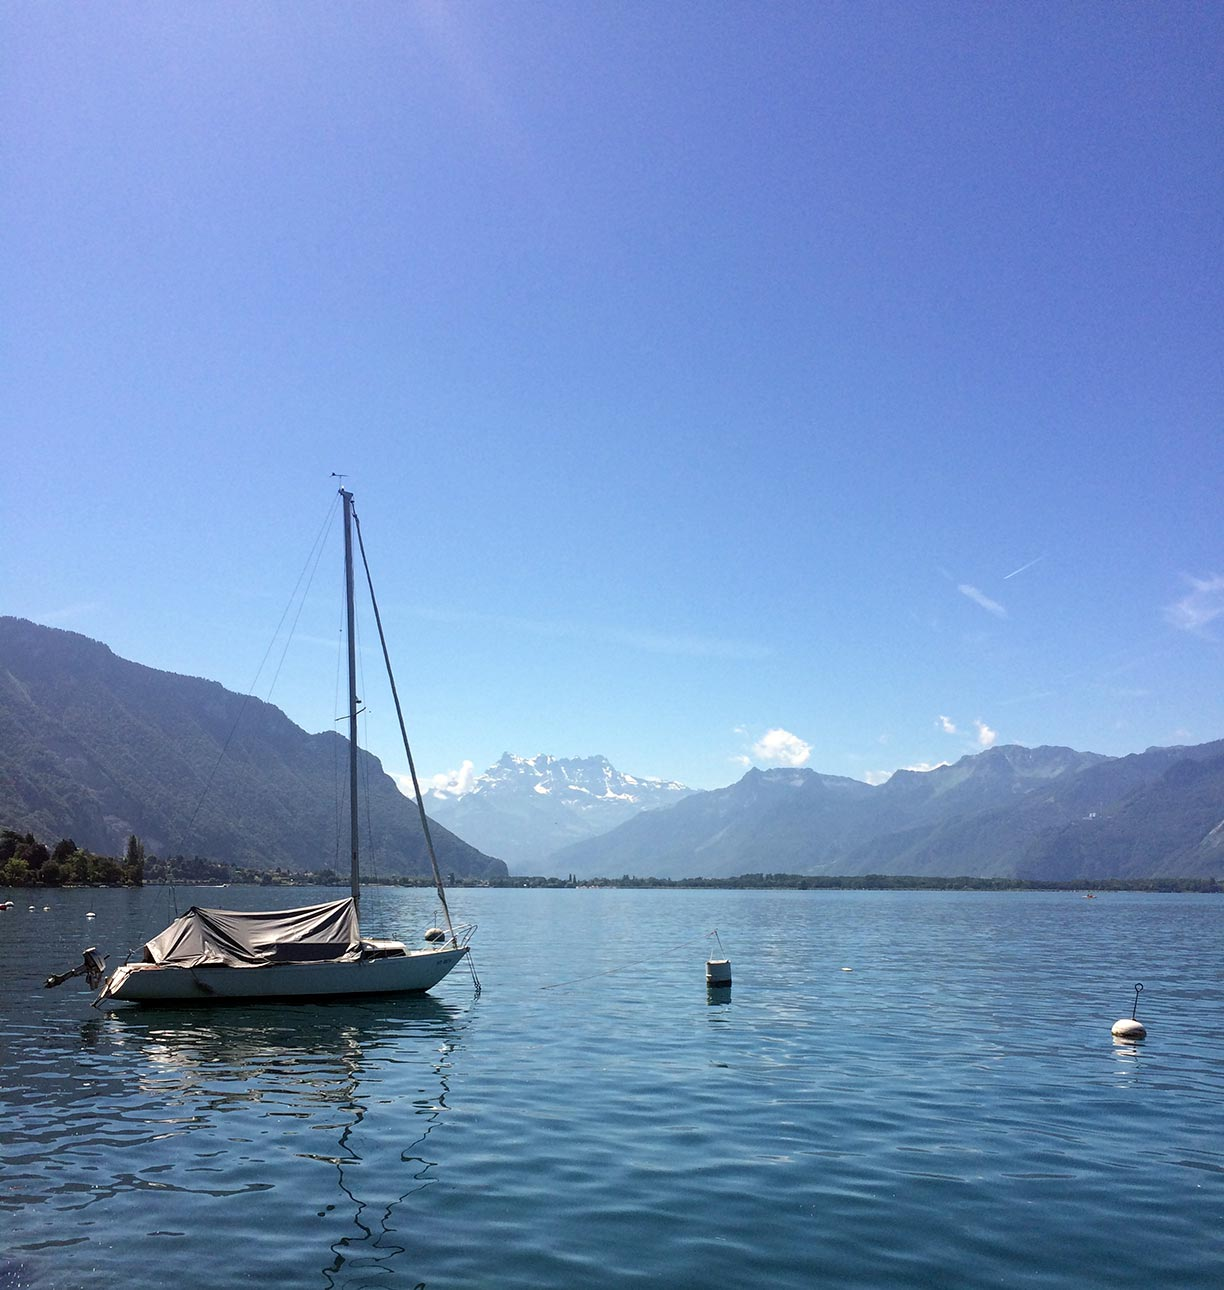 Lake Geneva with views of snowy mountains in the distance. A sailboat is in the foreground to the left.